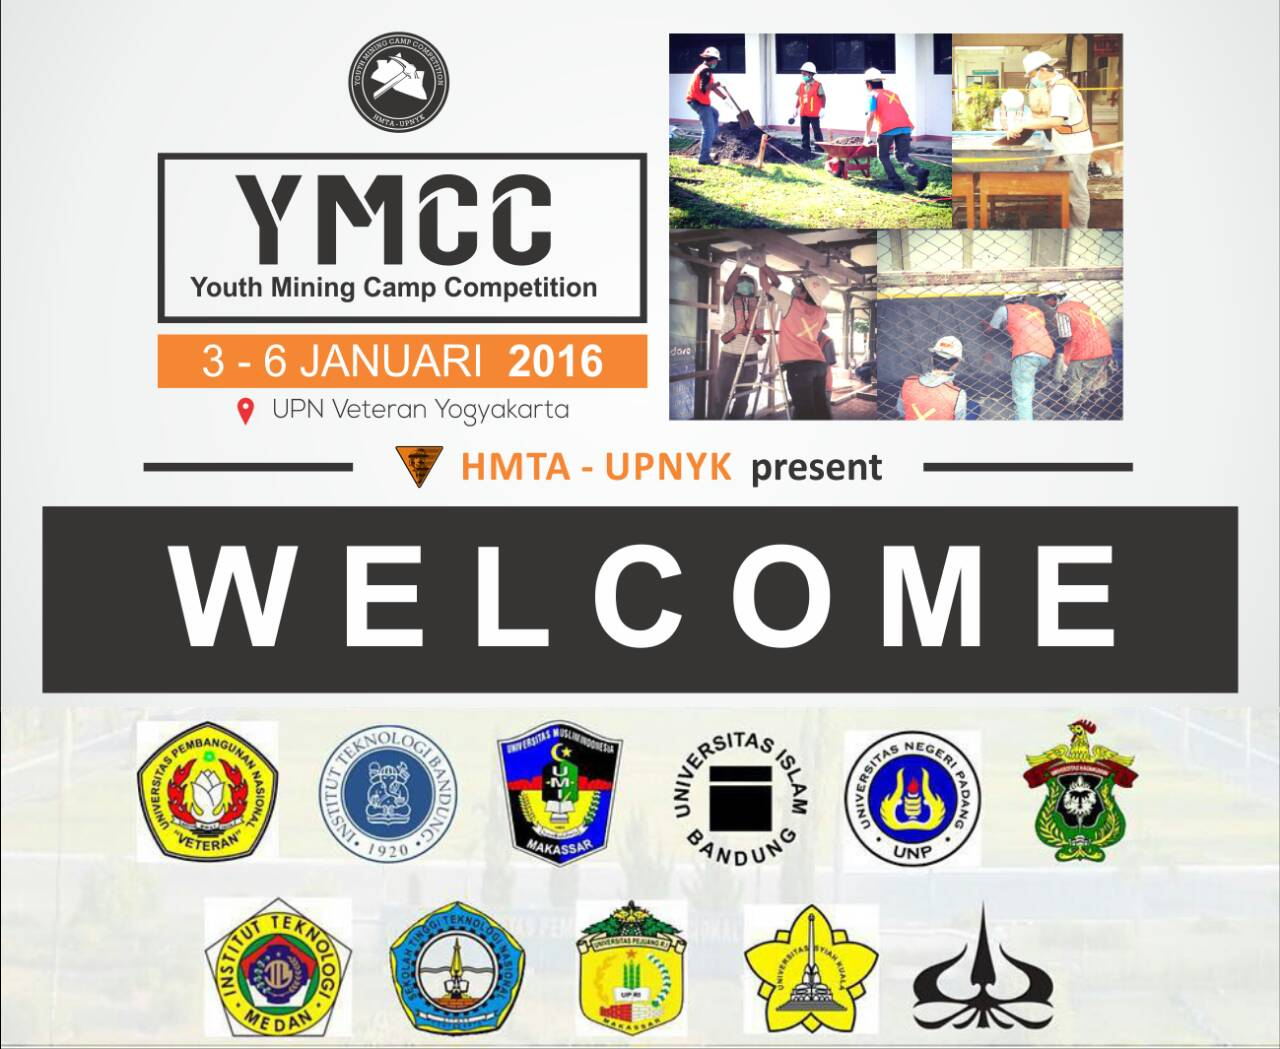 YMCCCOVER